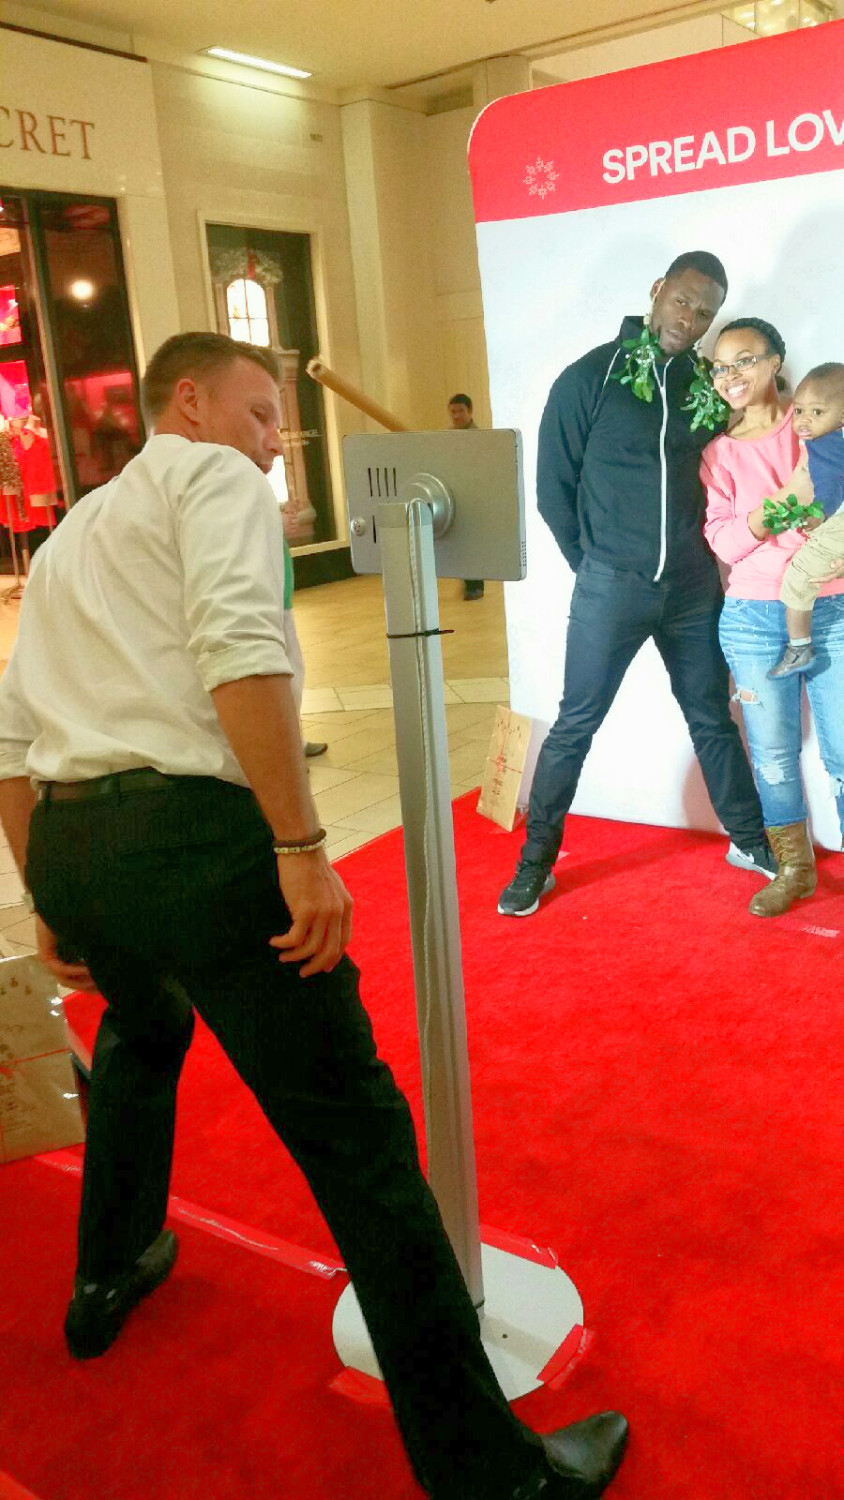 simon malls, spread love, nationwide event staffing, nationwide promotional staffing